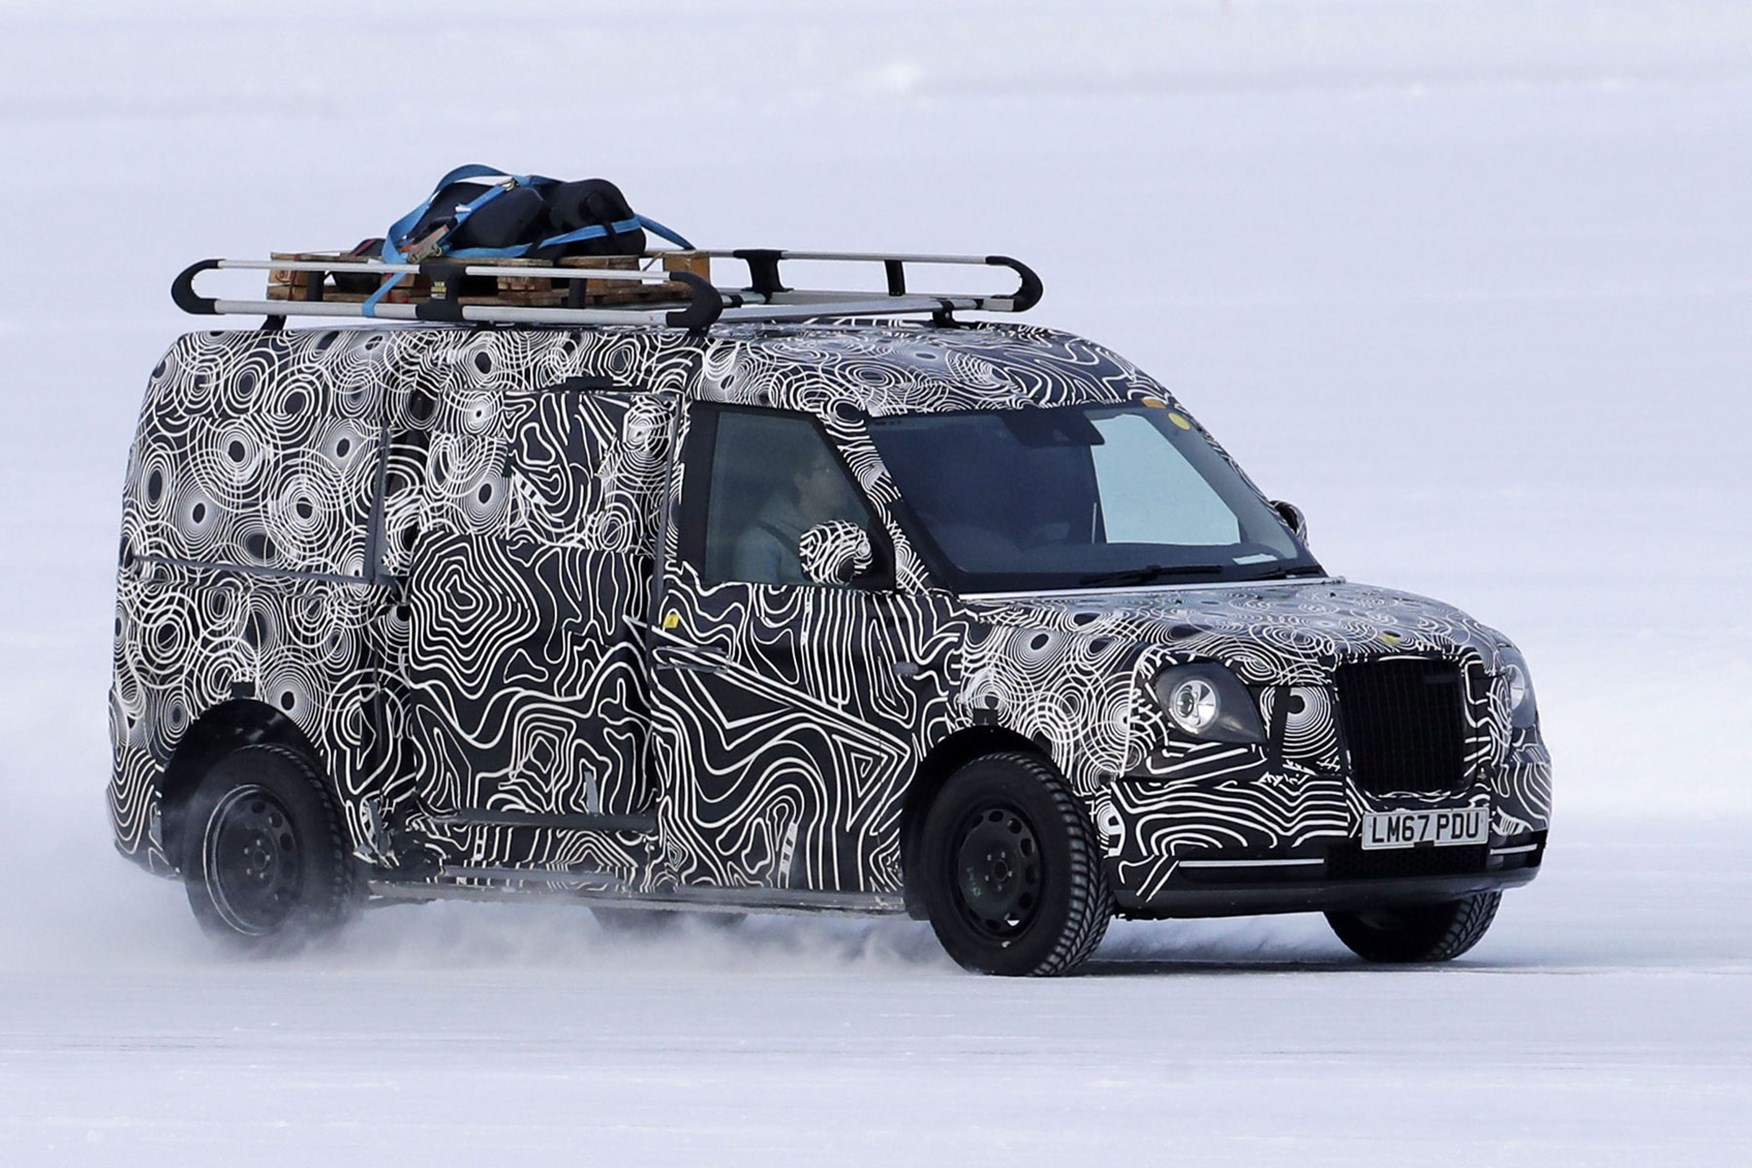 Levc Taxi Based Plug In Hybrid Electric Van Spy Photo Now Cancelled